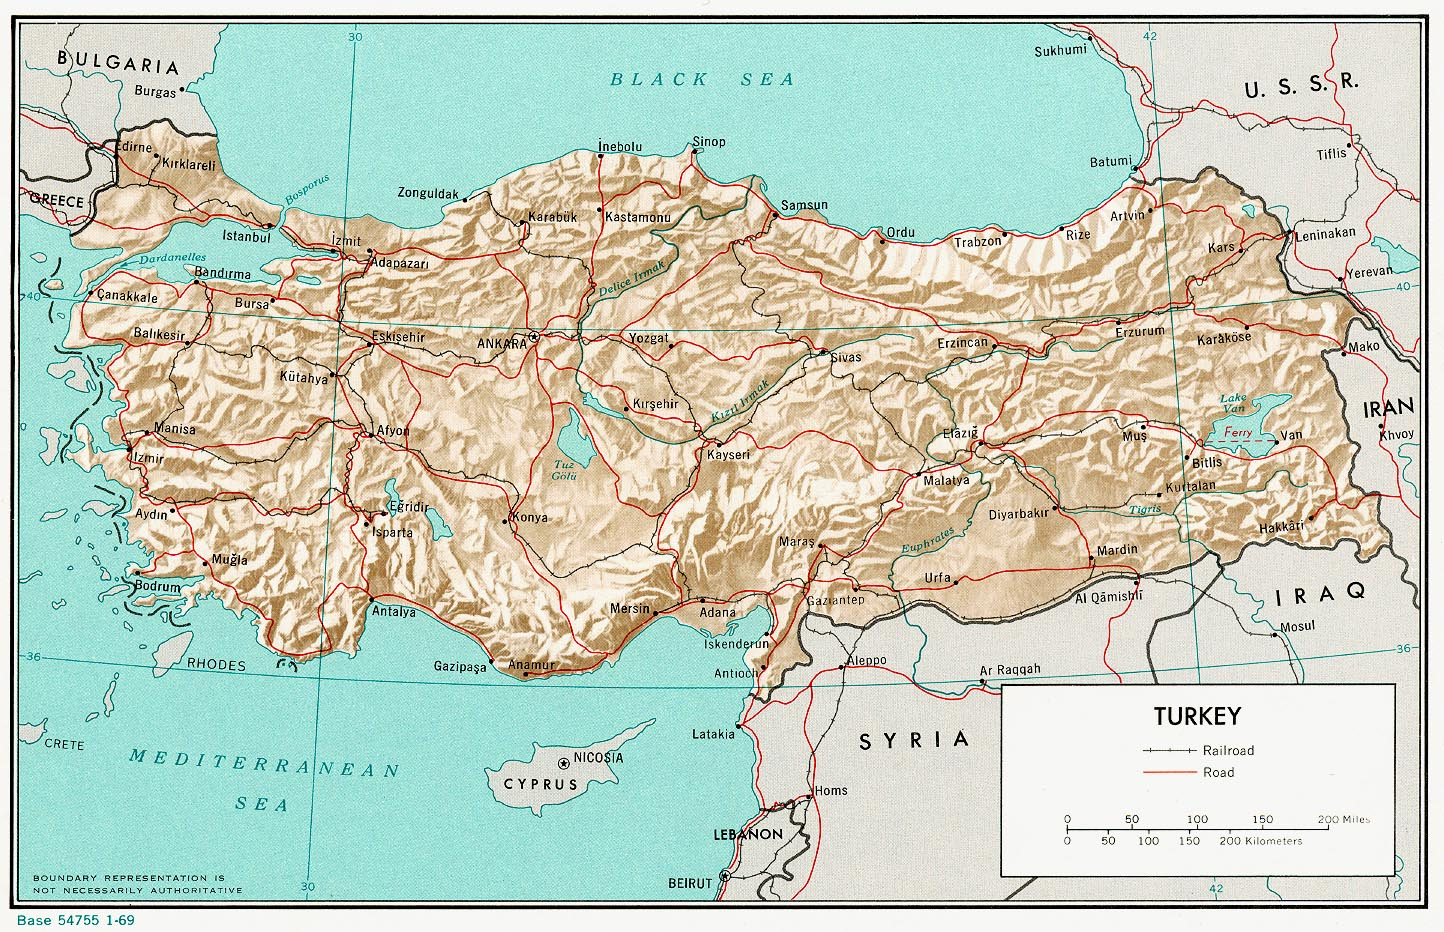 Mapa de Relieve Sombreado de Turquía